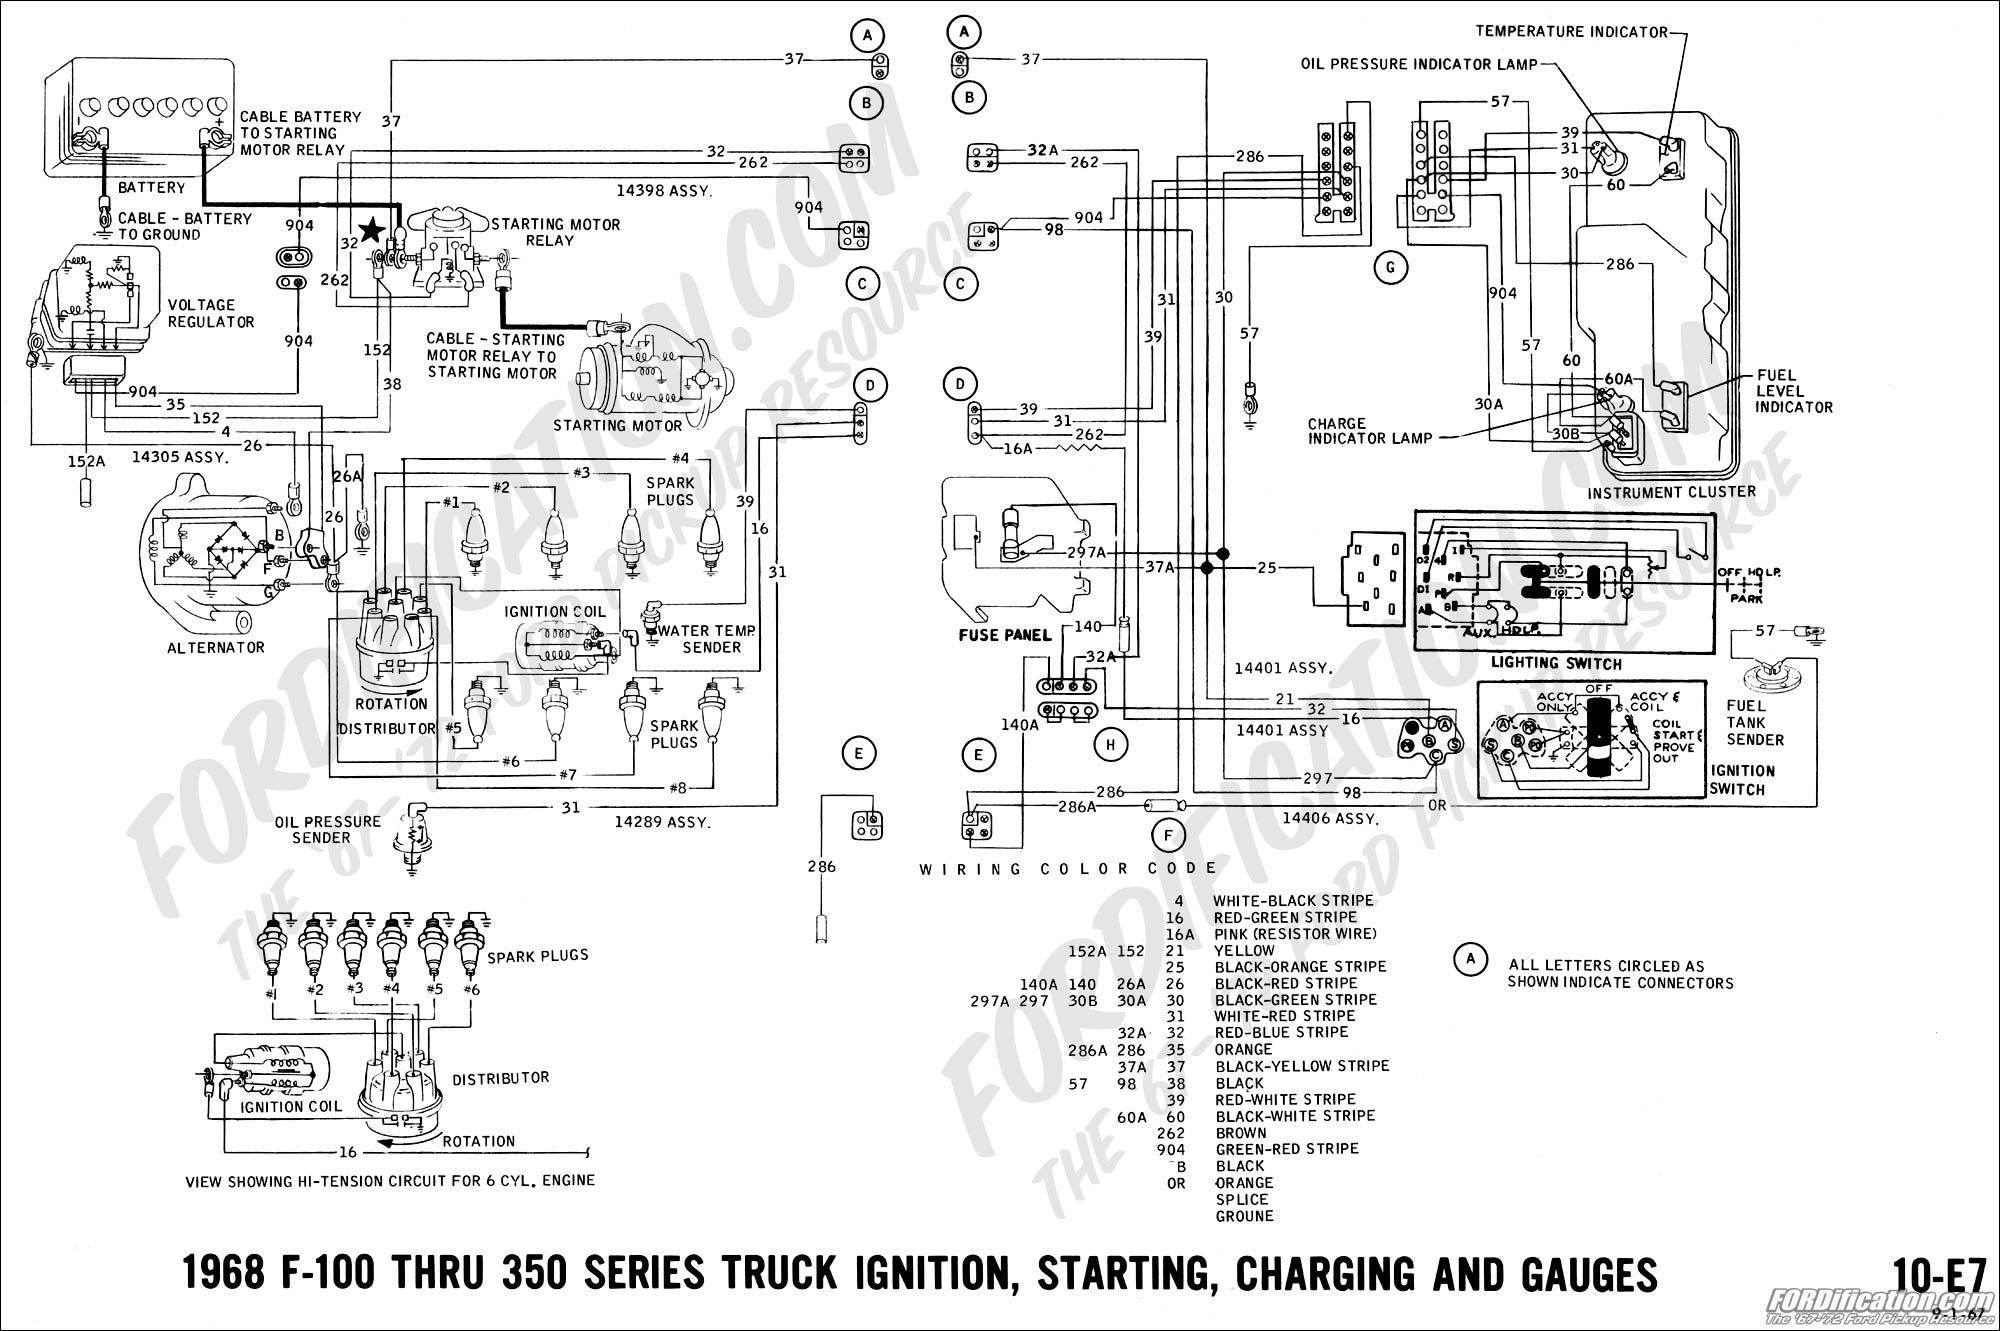 68 09 ford truck technical drawings and schematics section h wiring 1999 F150 Radio Wiring Diagram at alyssarenee.co